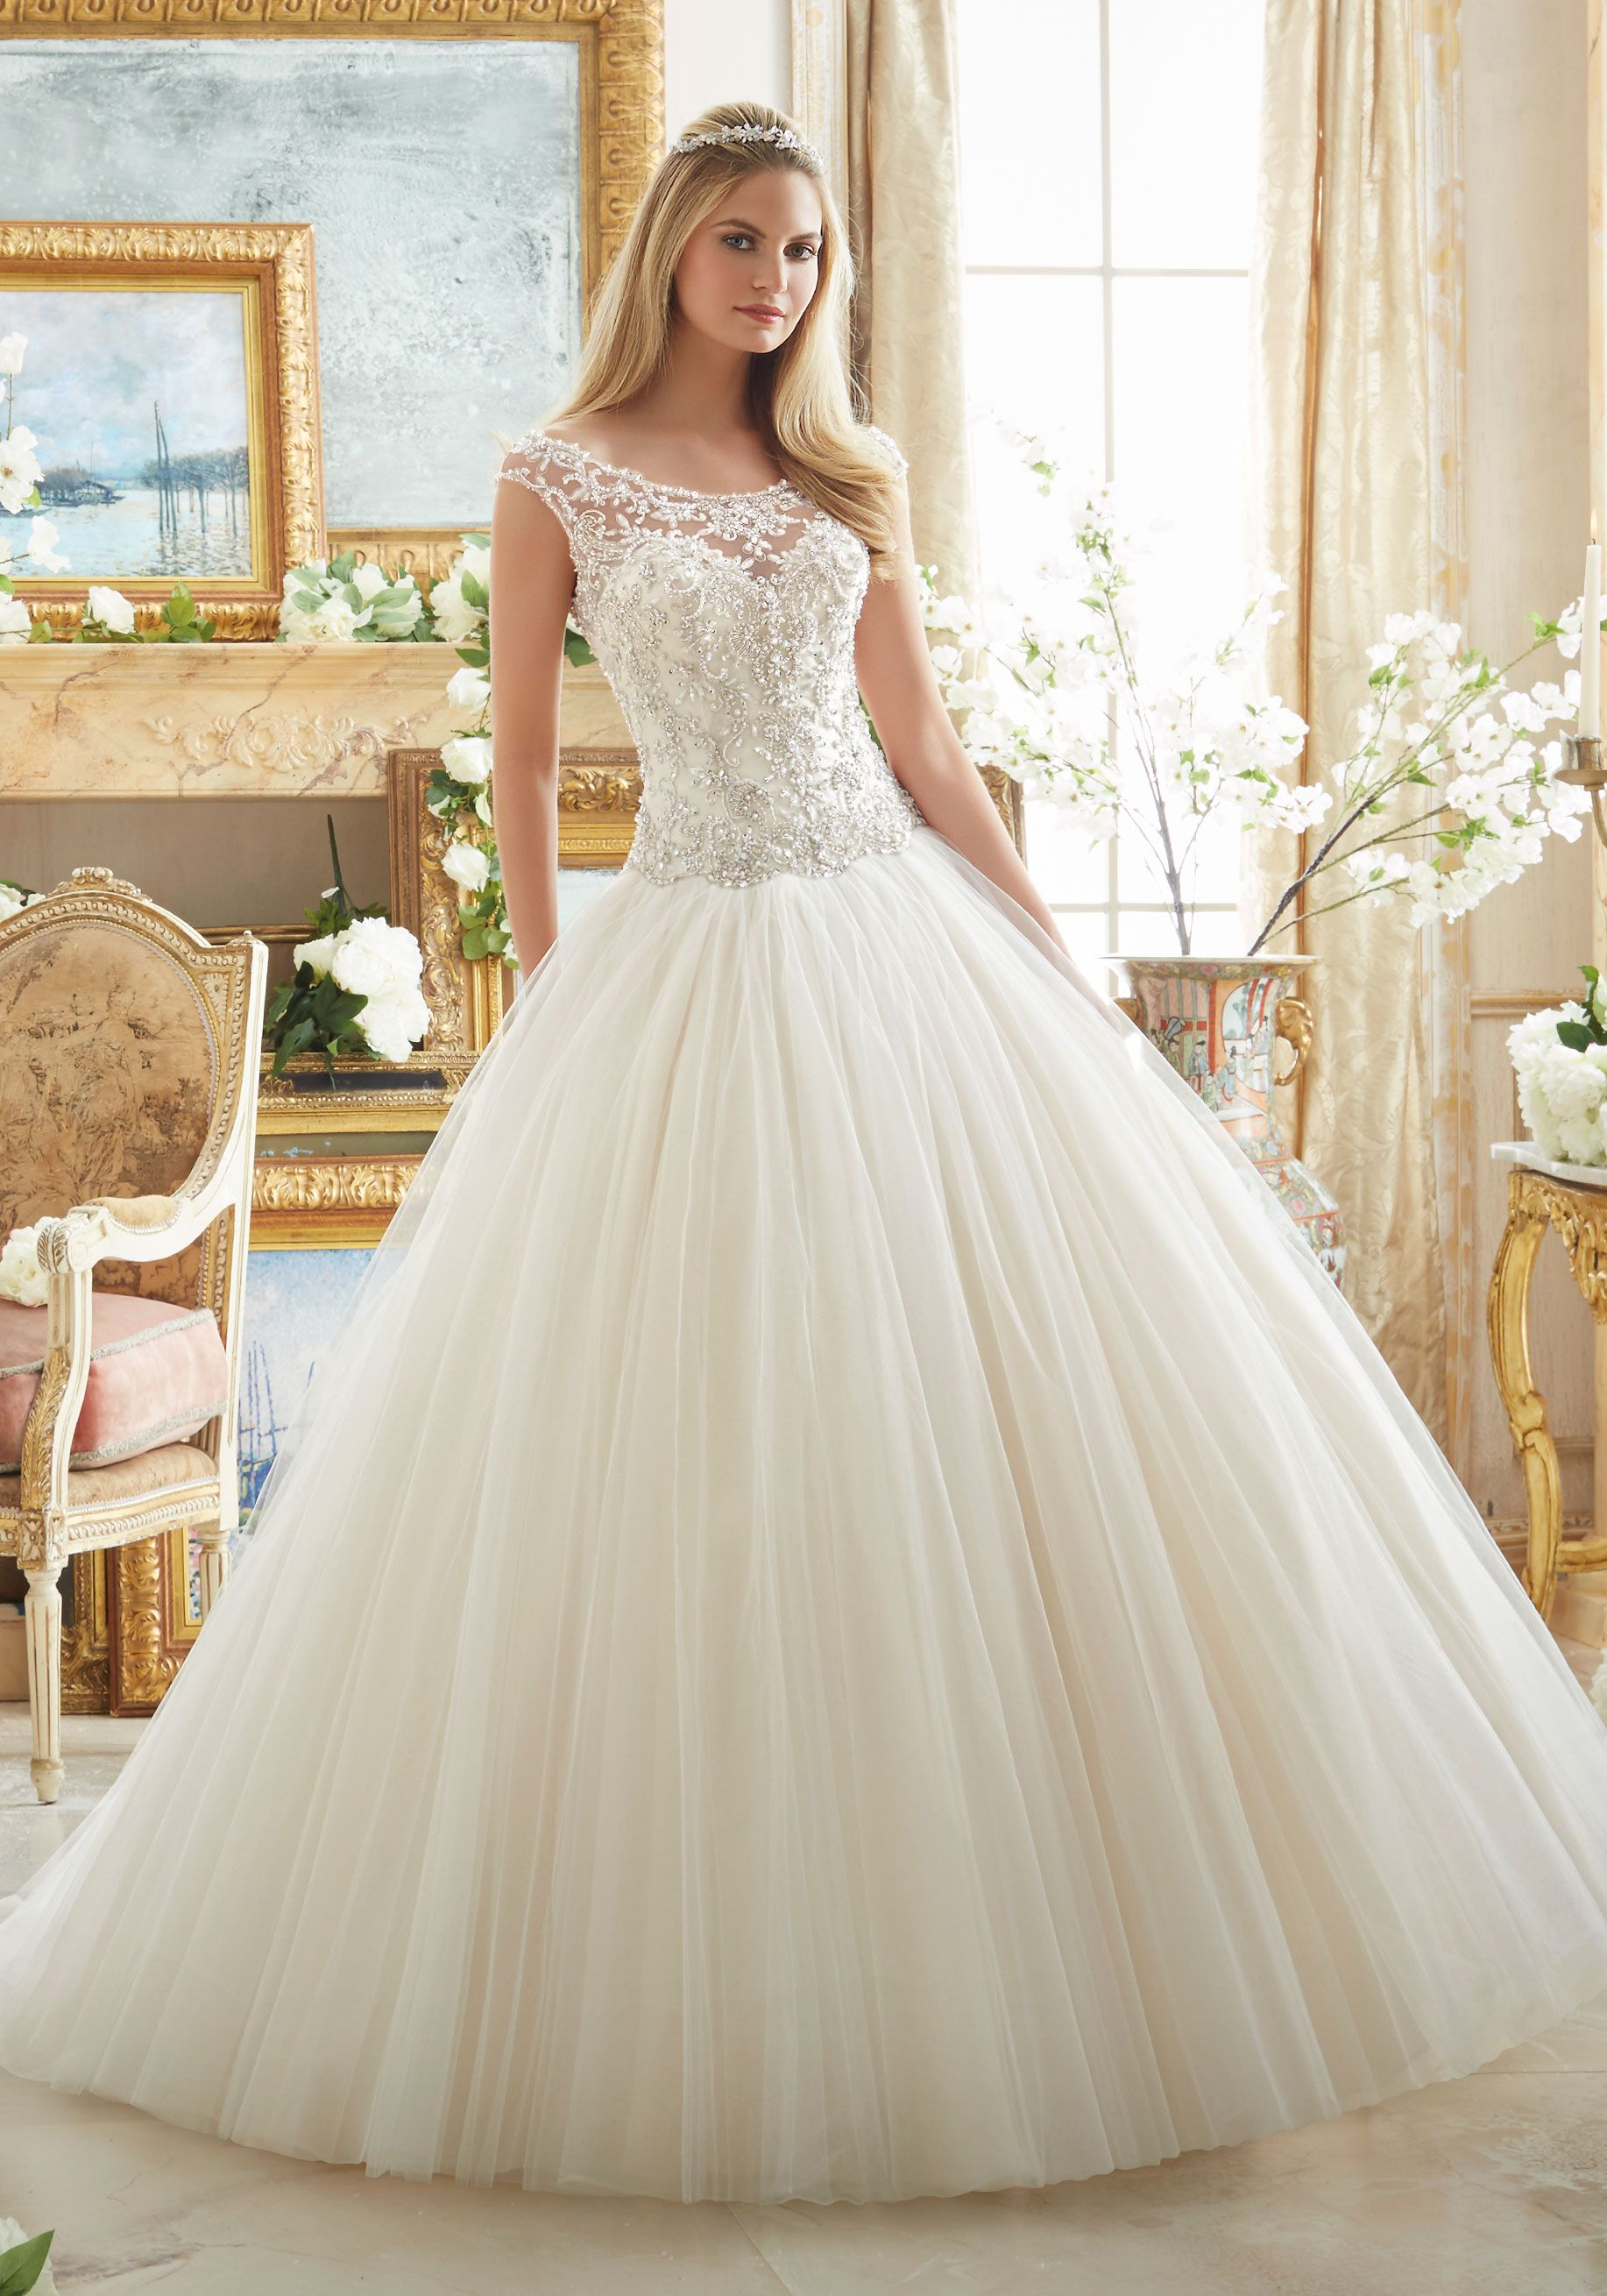 fd25d81e45 Crystal Beaded Embroidery on Tulle Ball Gown Morilee Bridal | WD ...